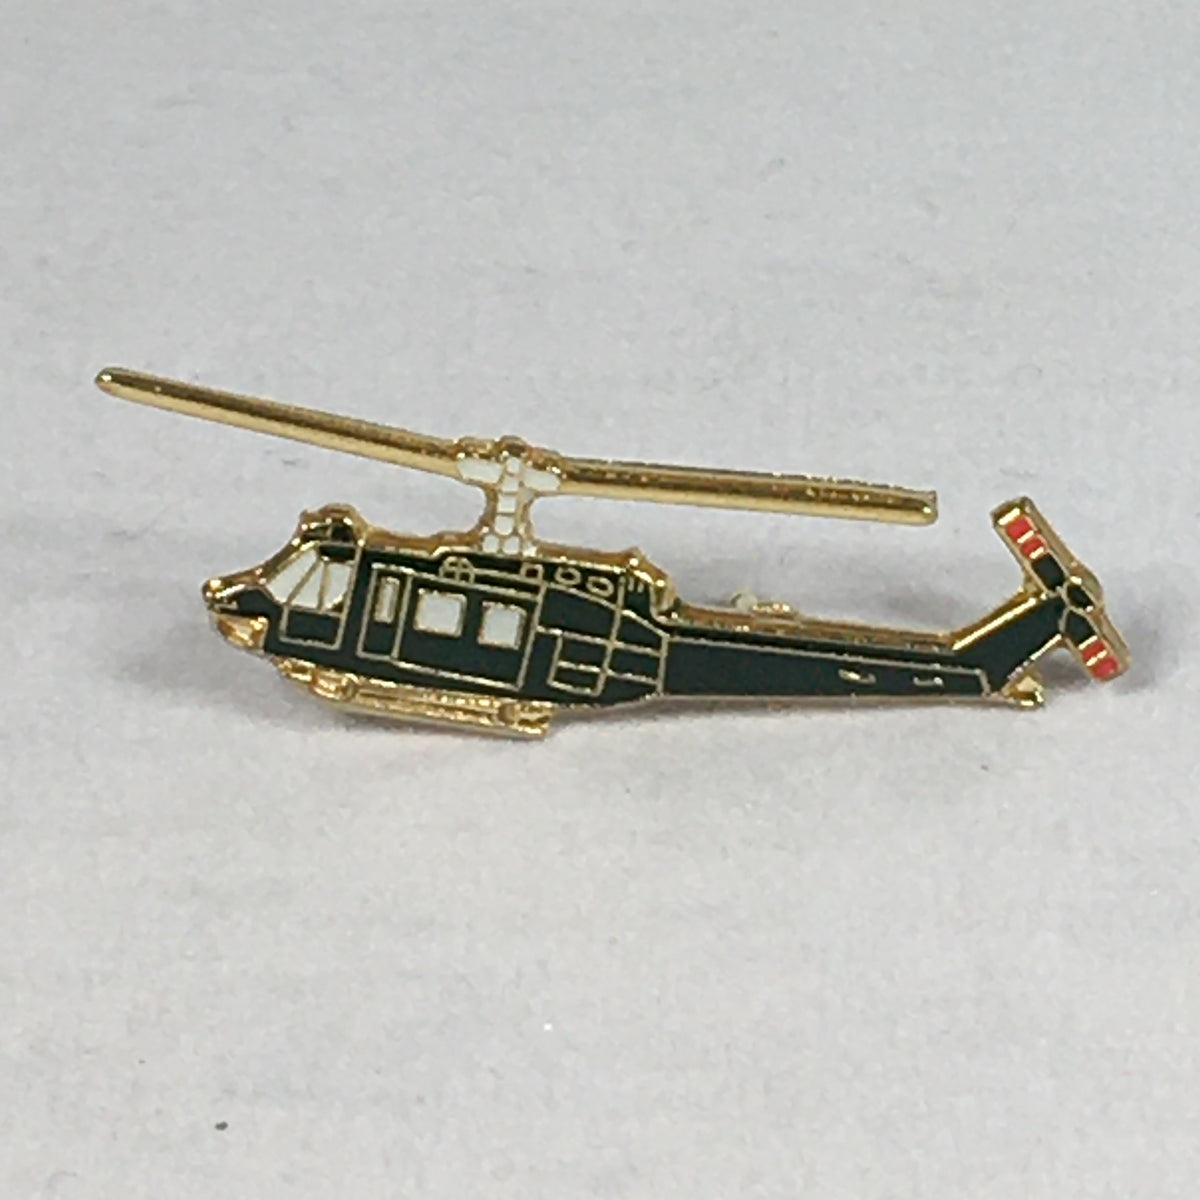 UH-1 Huey Helicopter Pin